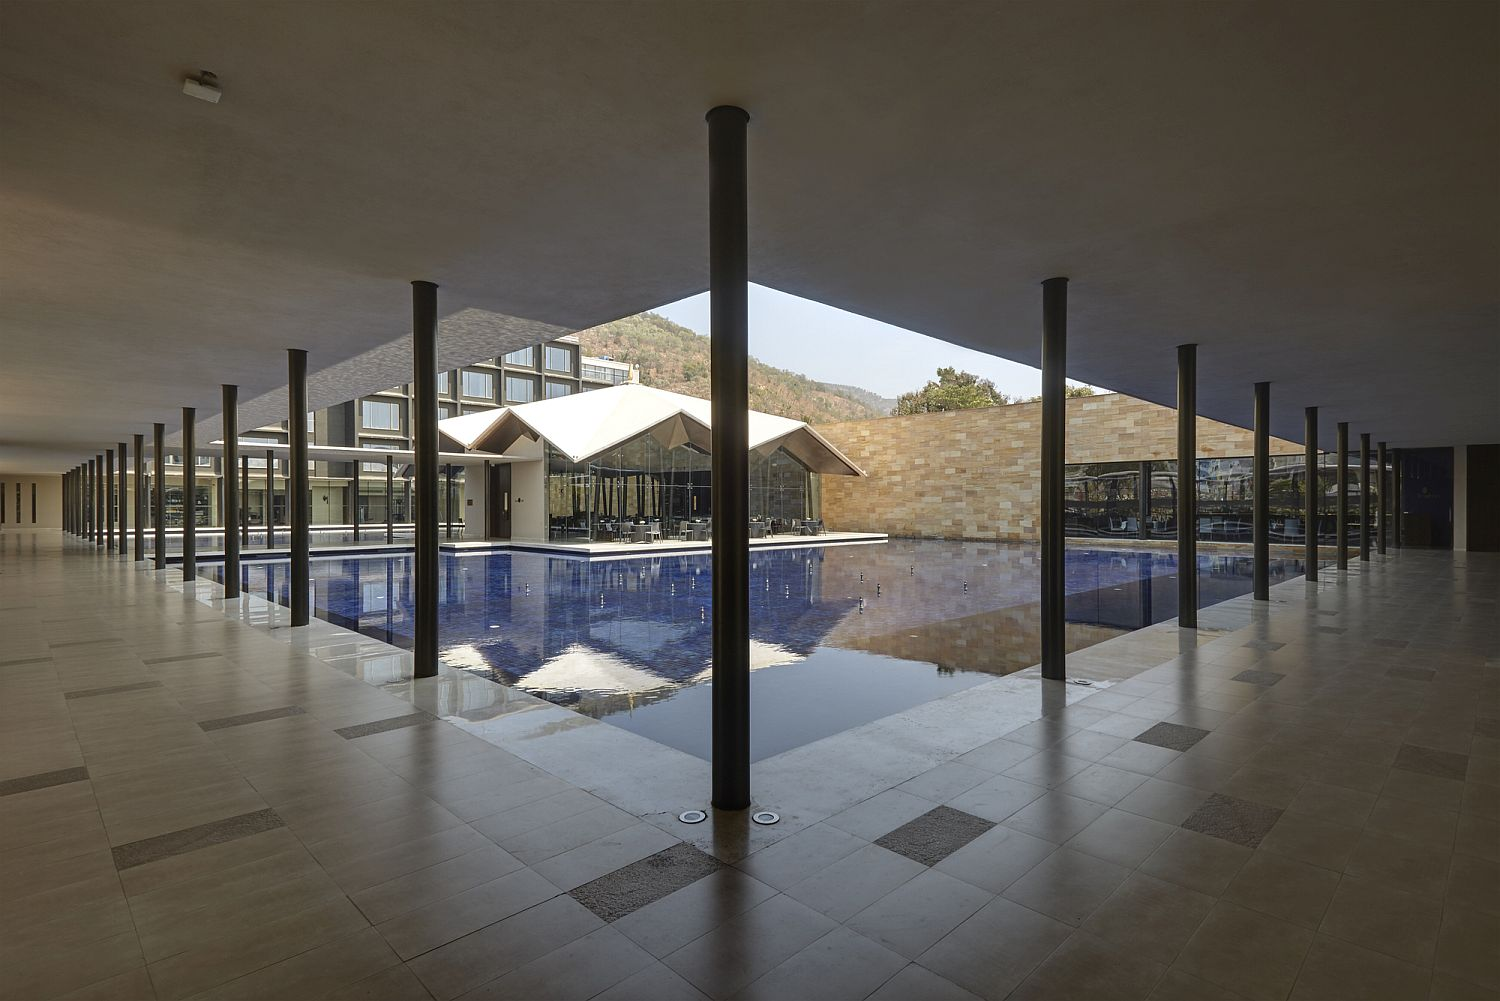 View of the central pool and courtyard at Hotel Dasavatara